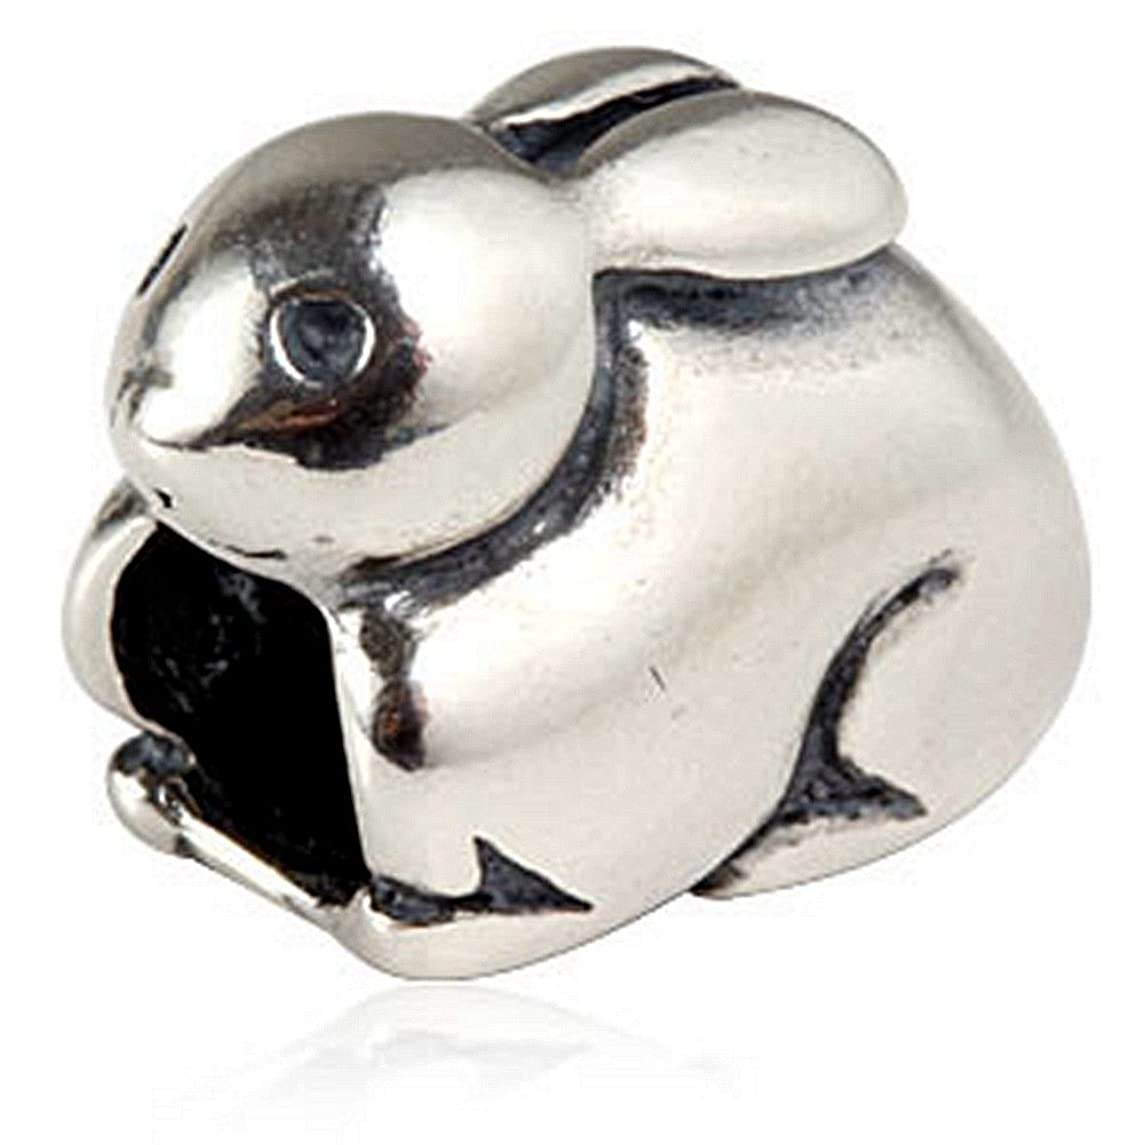 Lovely Rabbit Bunny Charm 925 Sterling Silver Animal Bead fit DIY Charm Bracelet Jewelry